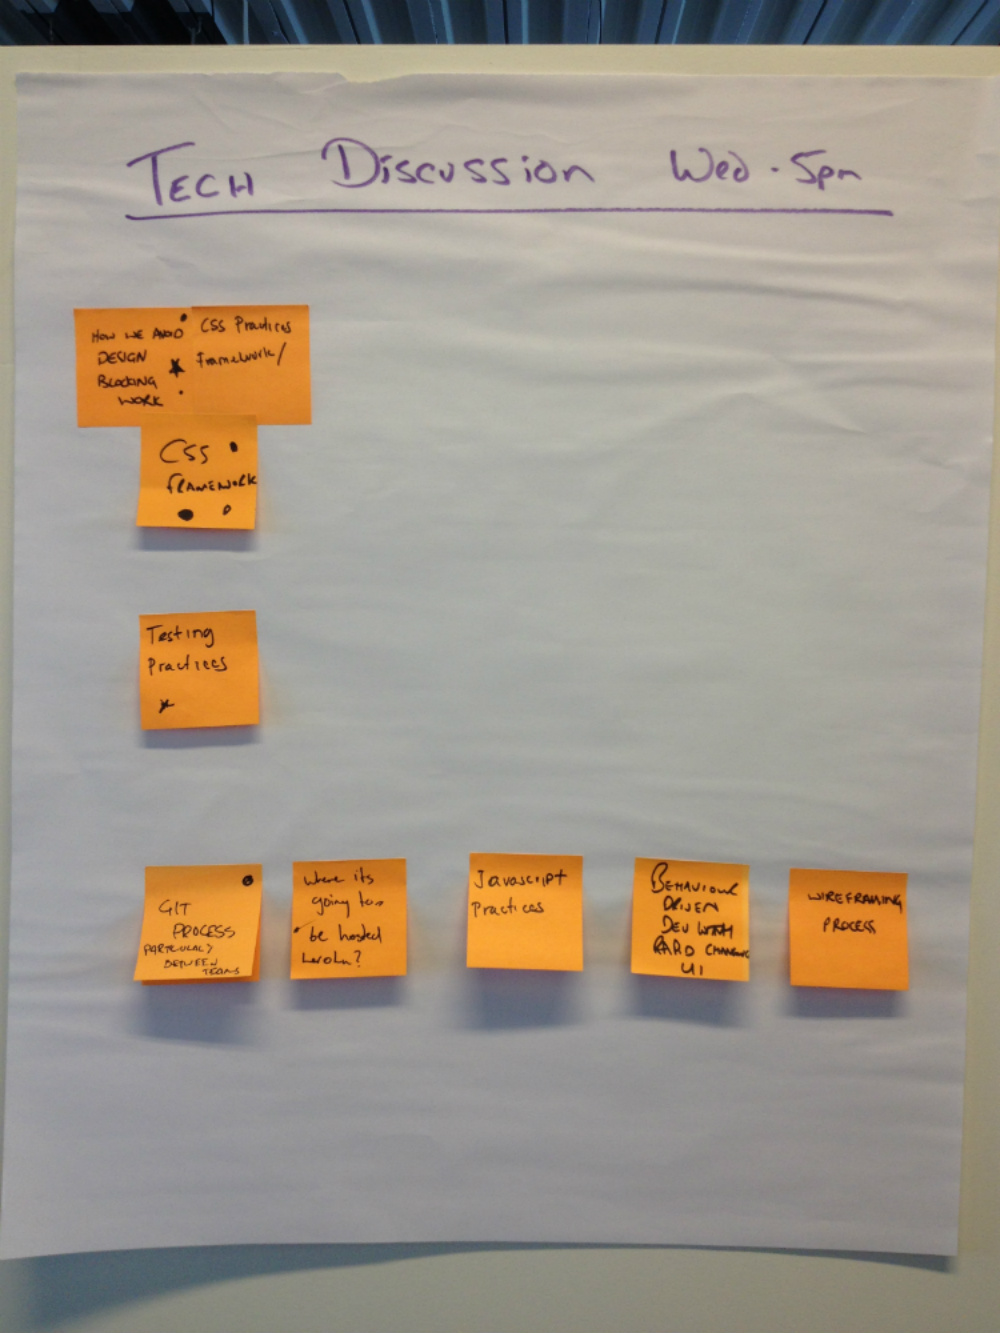 Post-it notes with topics for our technical discussion